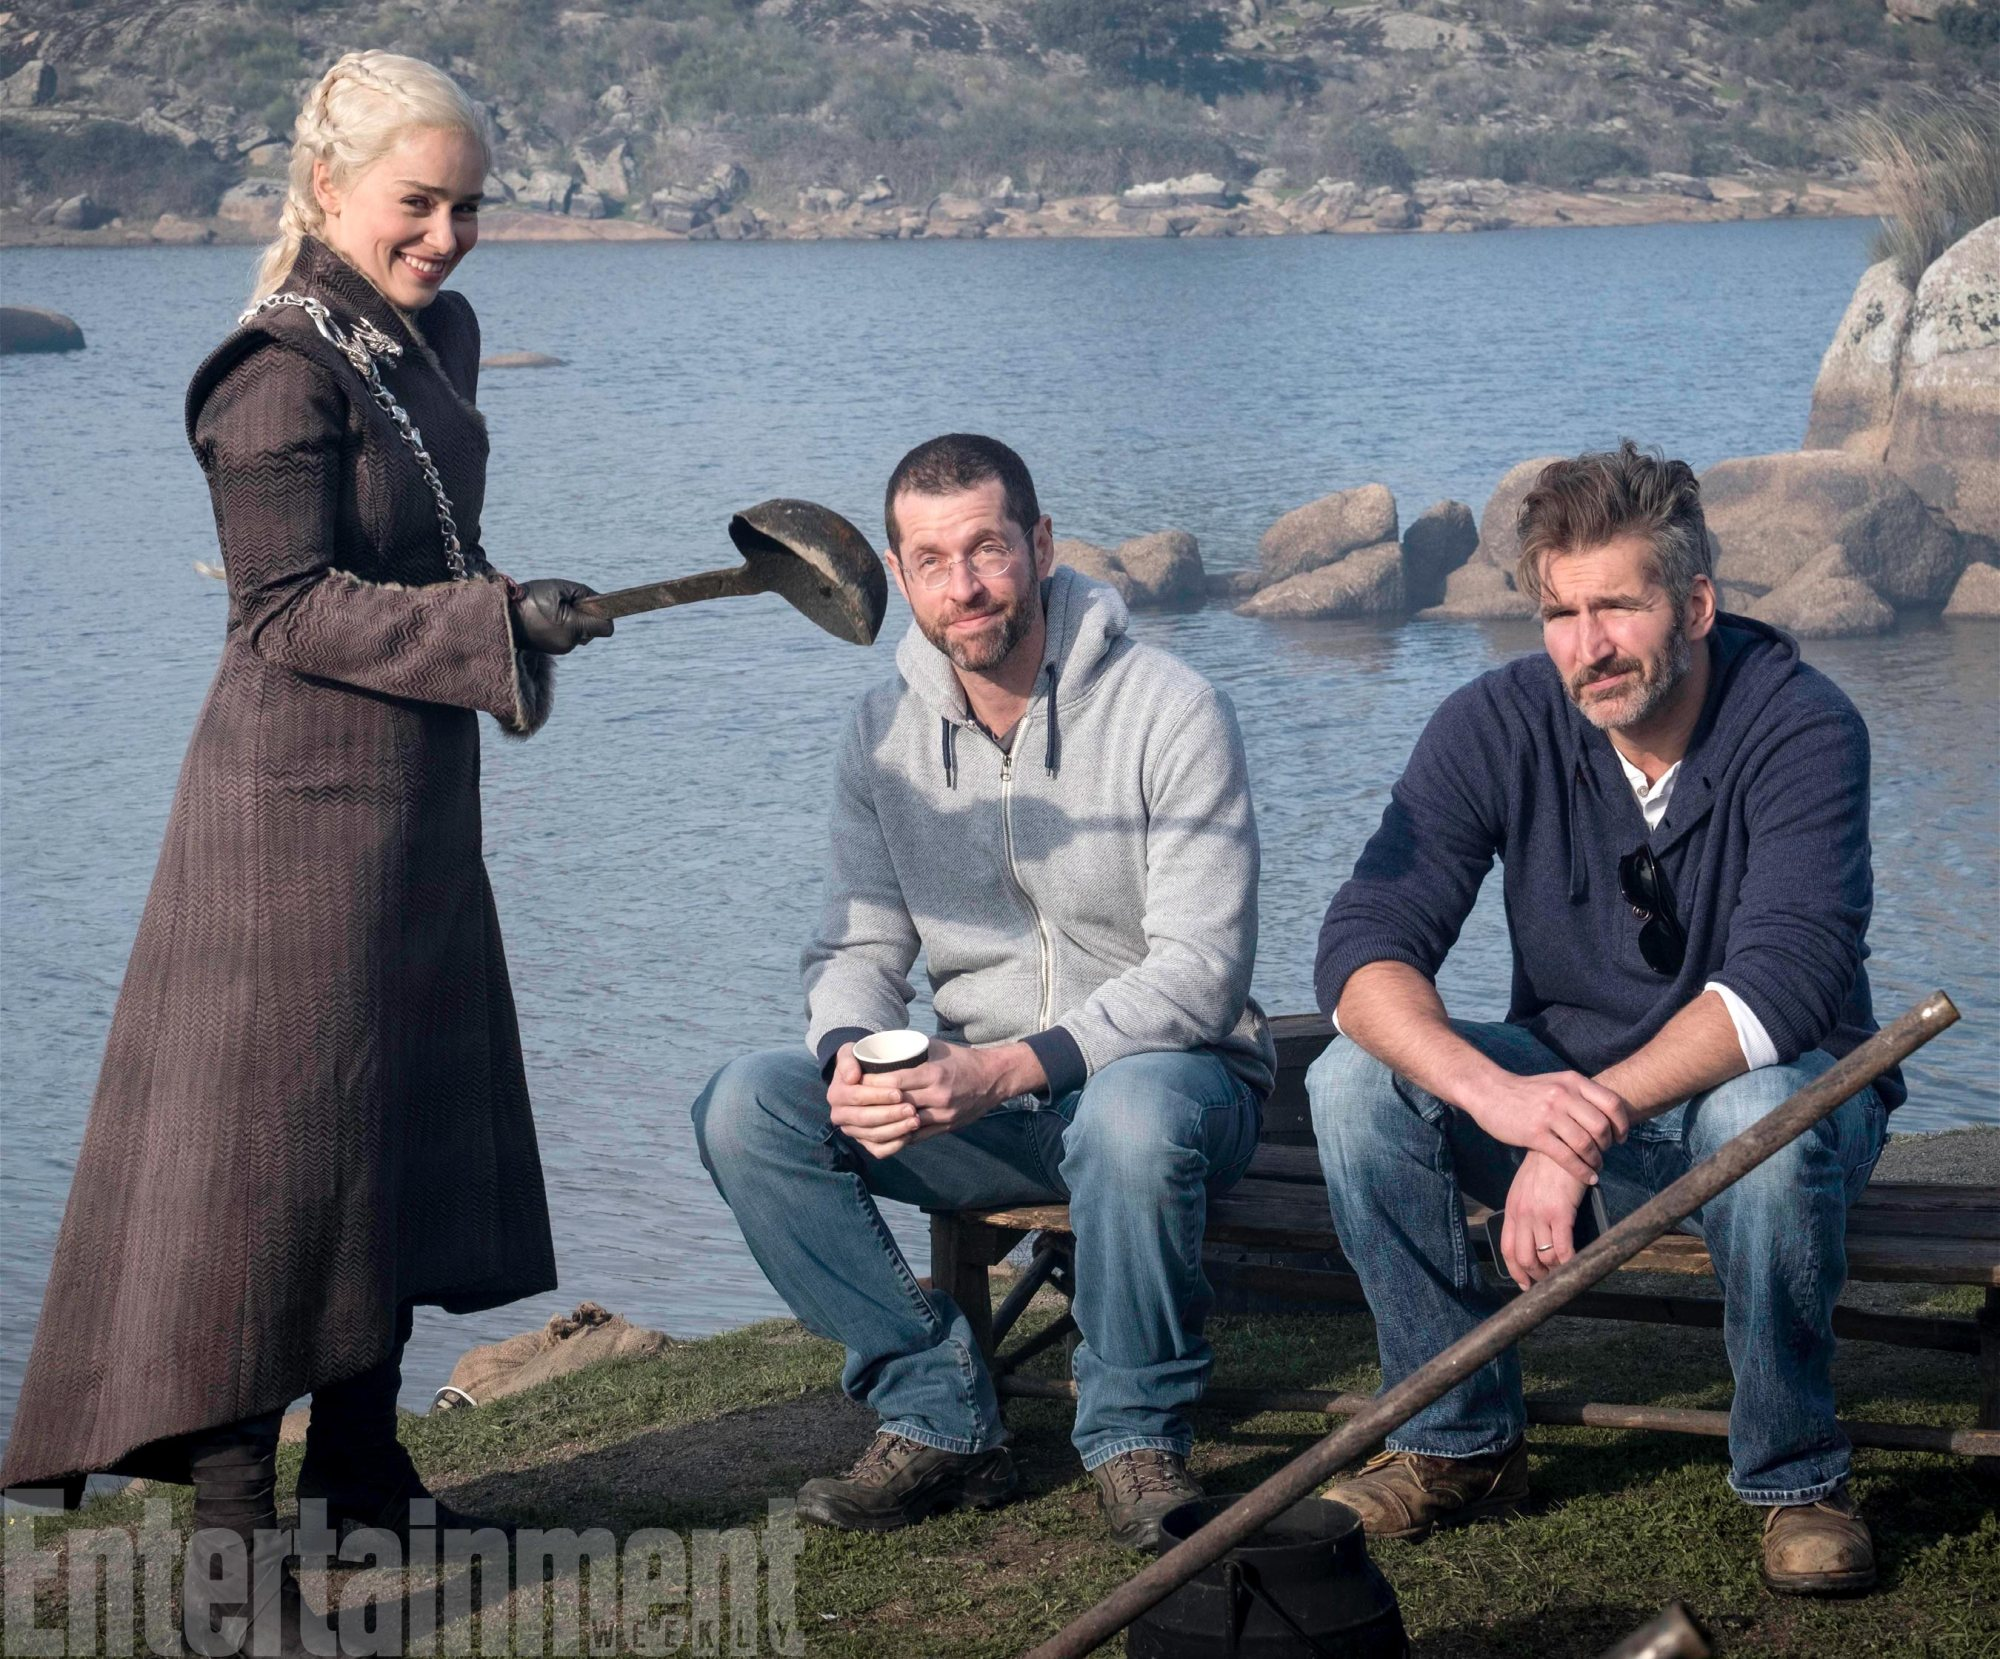 Dan Weiss and David Benioff teased by Emilia Clarke during filming